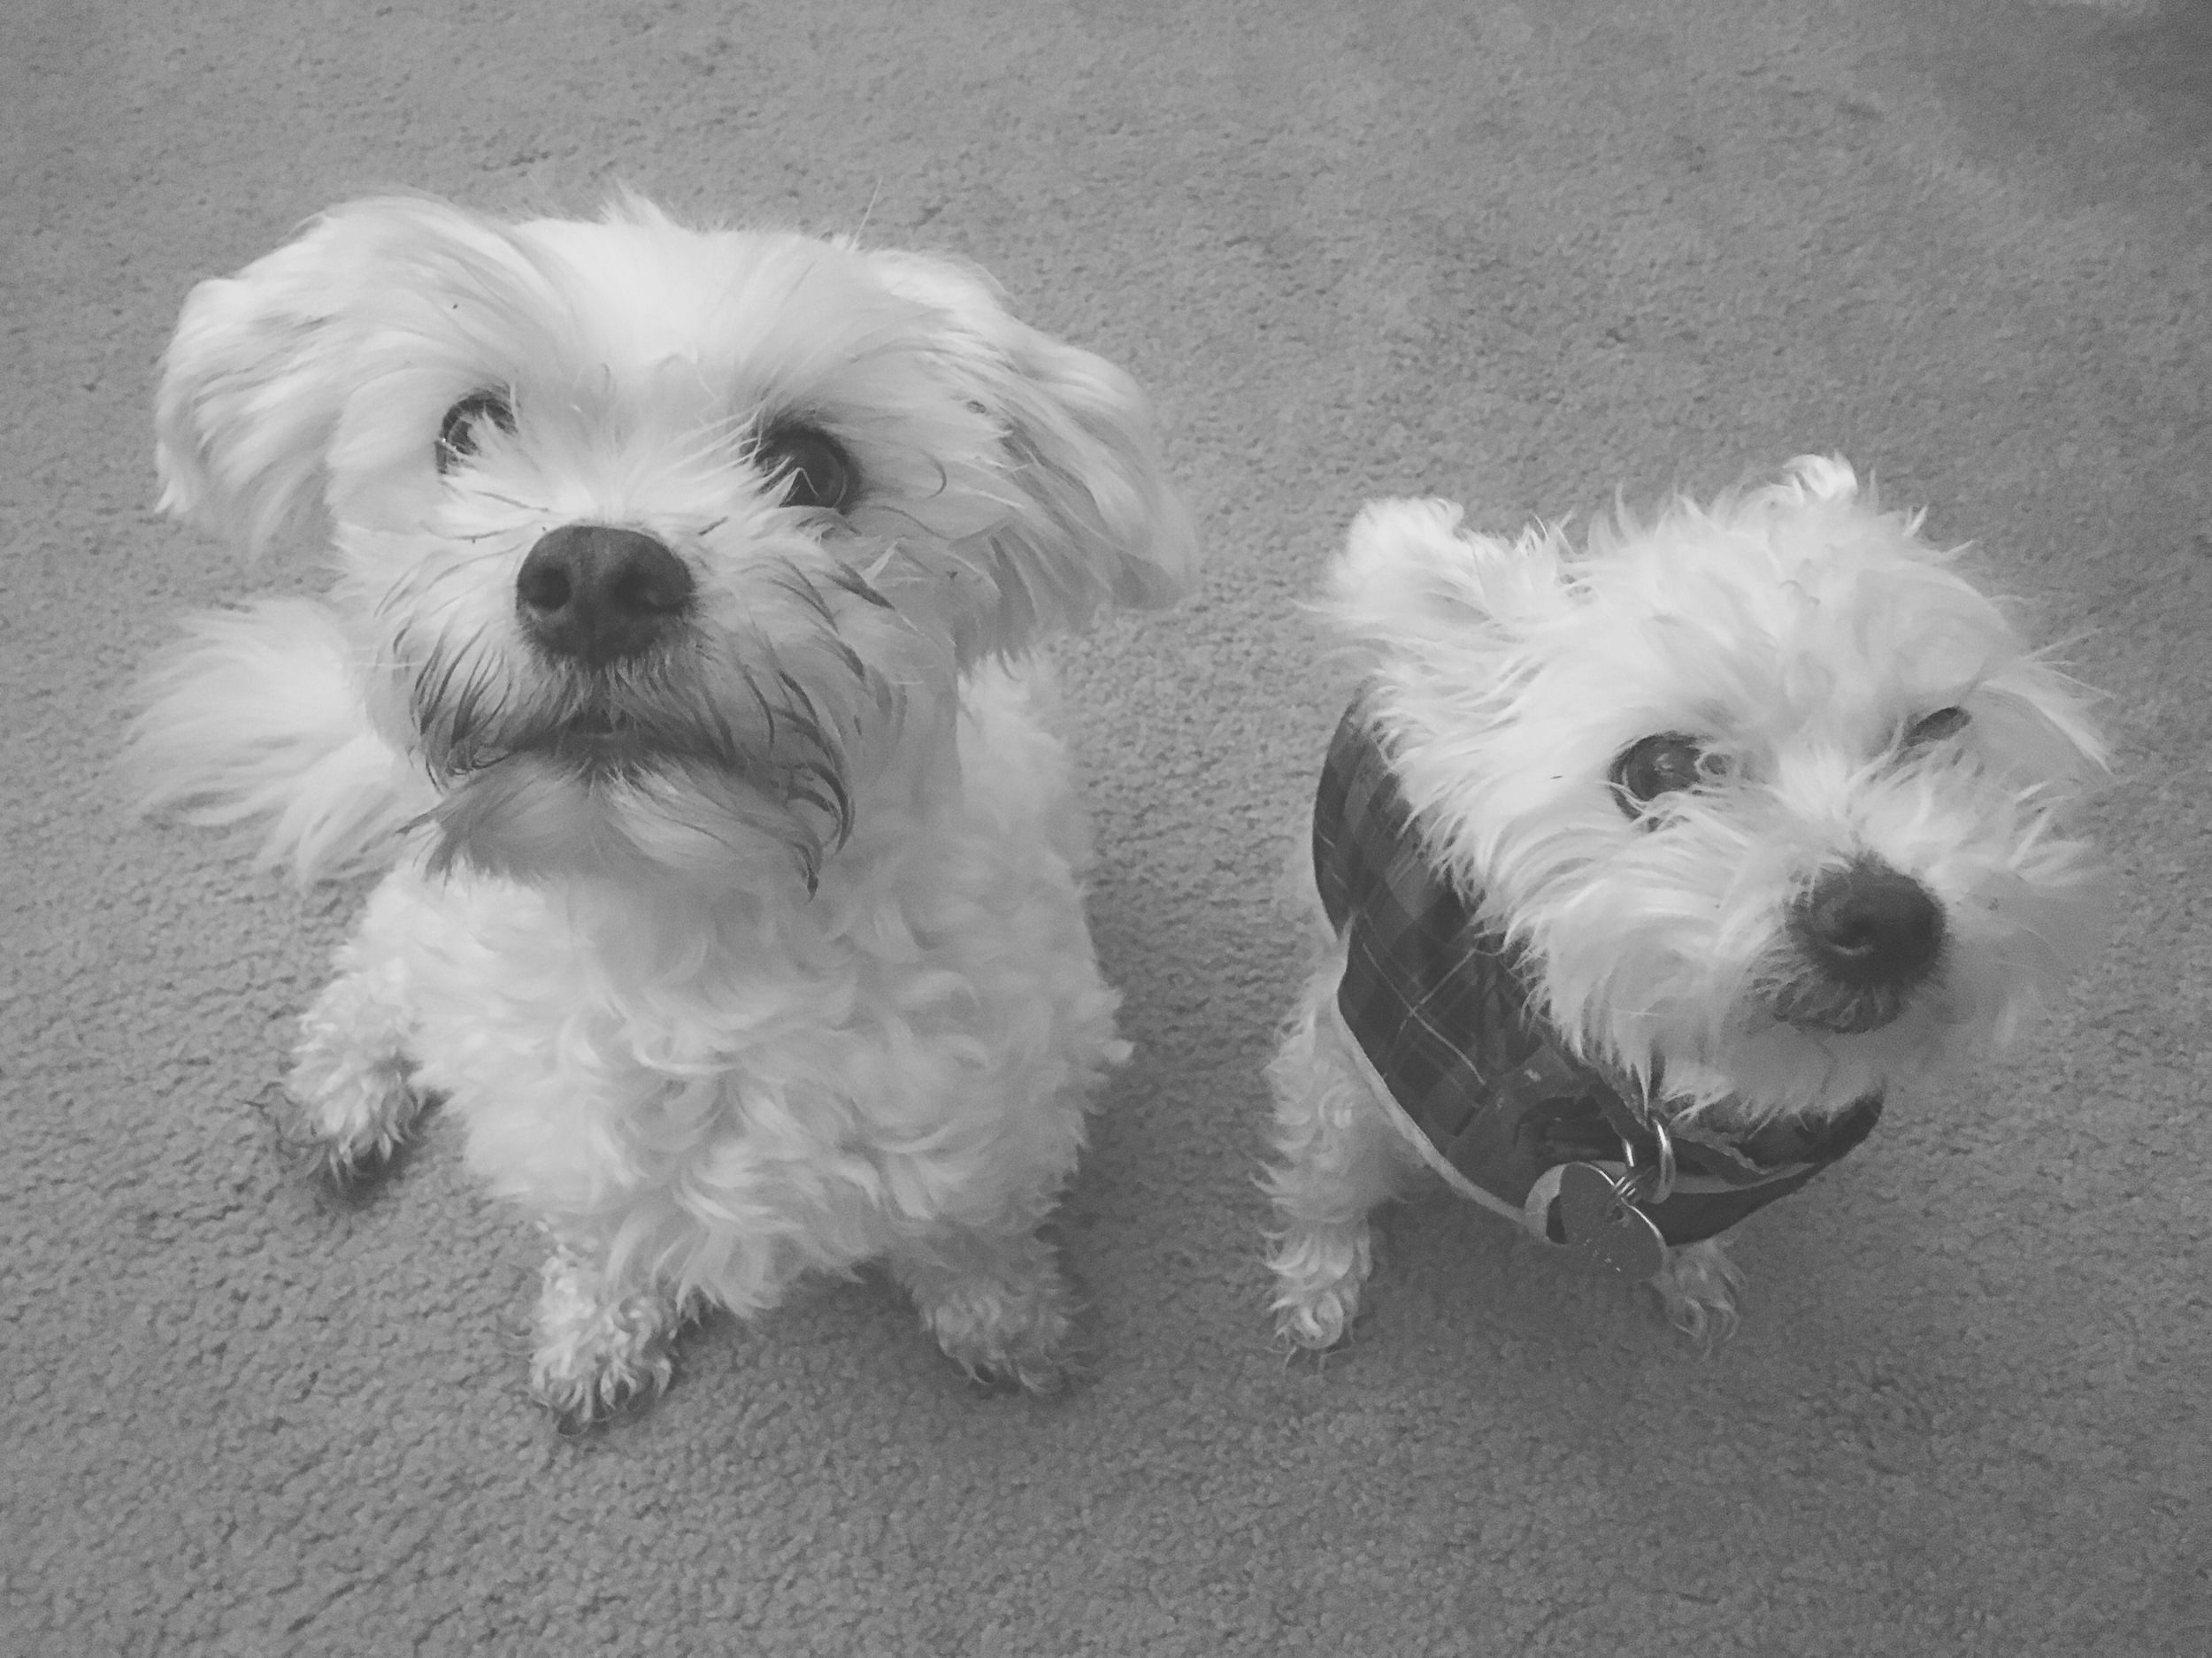 Armani (left) & Ivory (right).